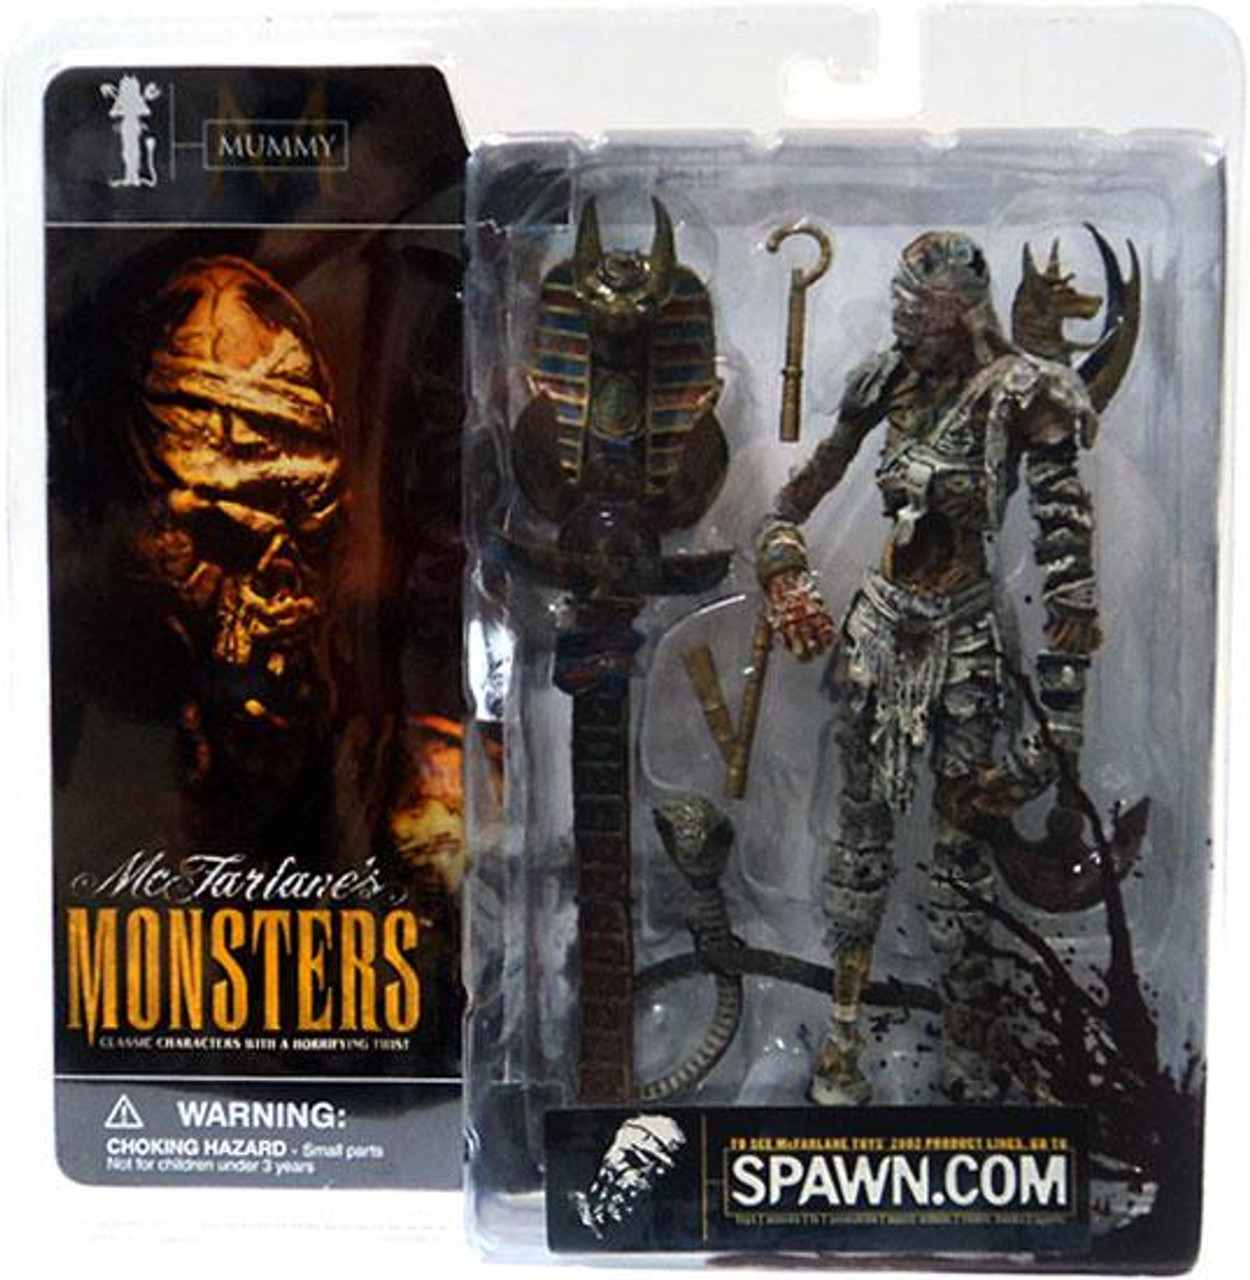 McFarlane Toys McFarlane's Monsters Series 1 Mummy Action Figure [Blood Splattered Package Variant]